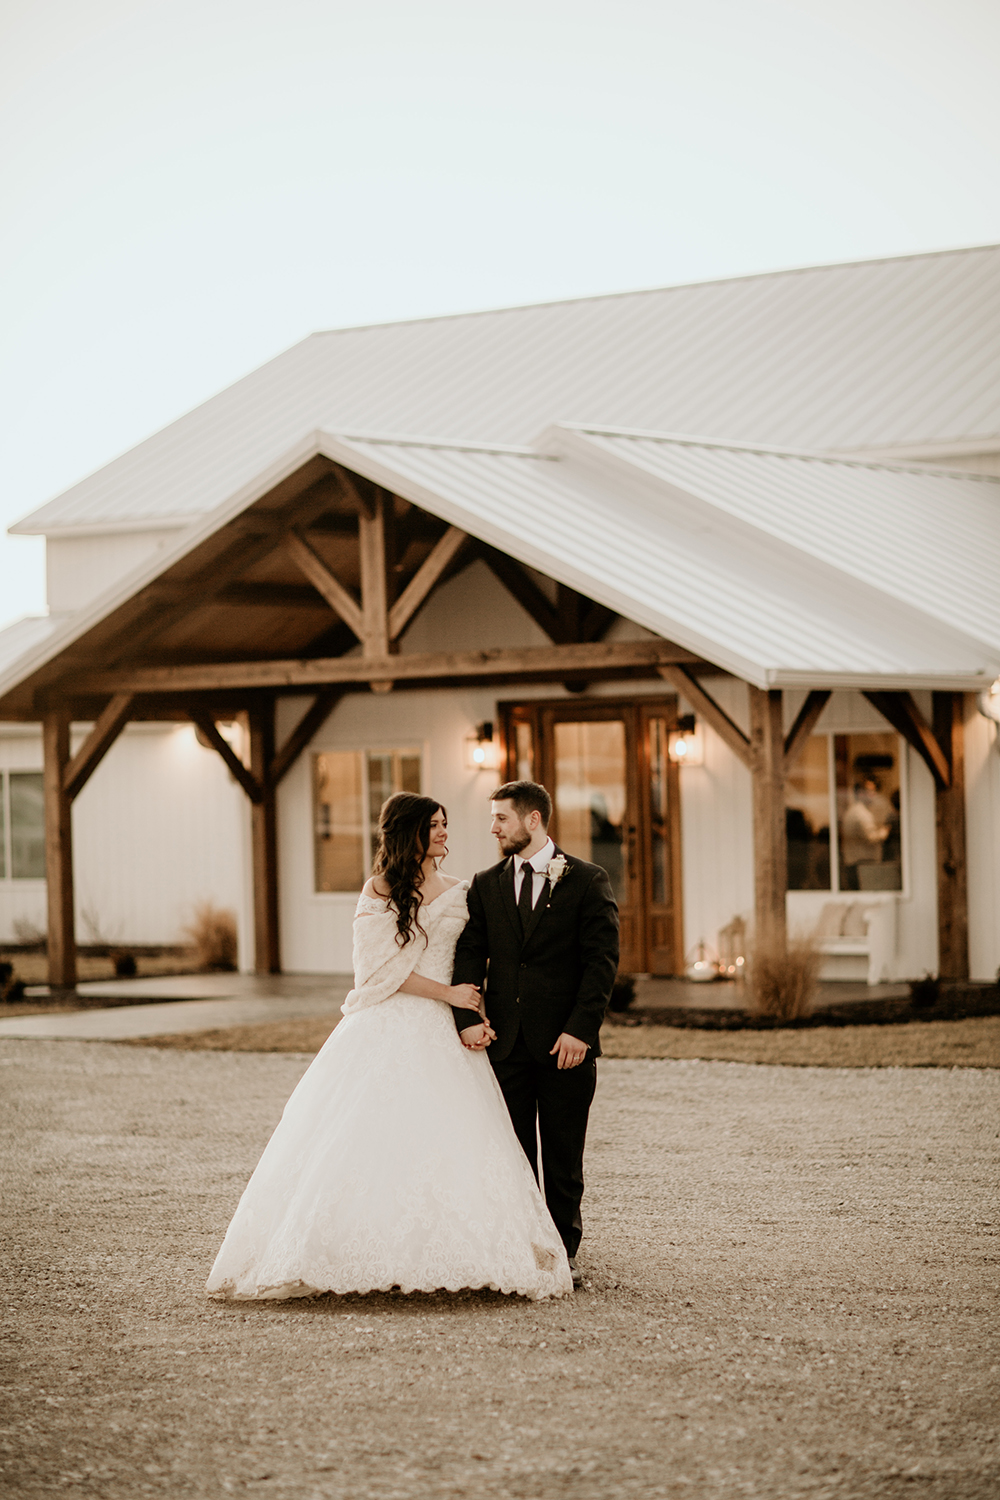 photographer_missouri_wedding_dreamy_engagement_outdoor_portrait_3.JPG